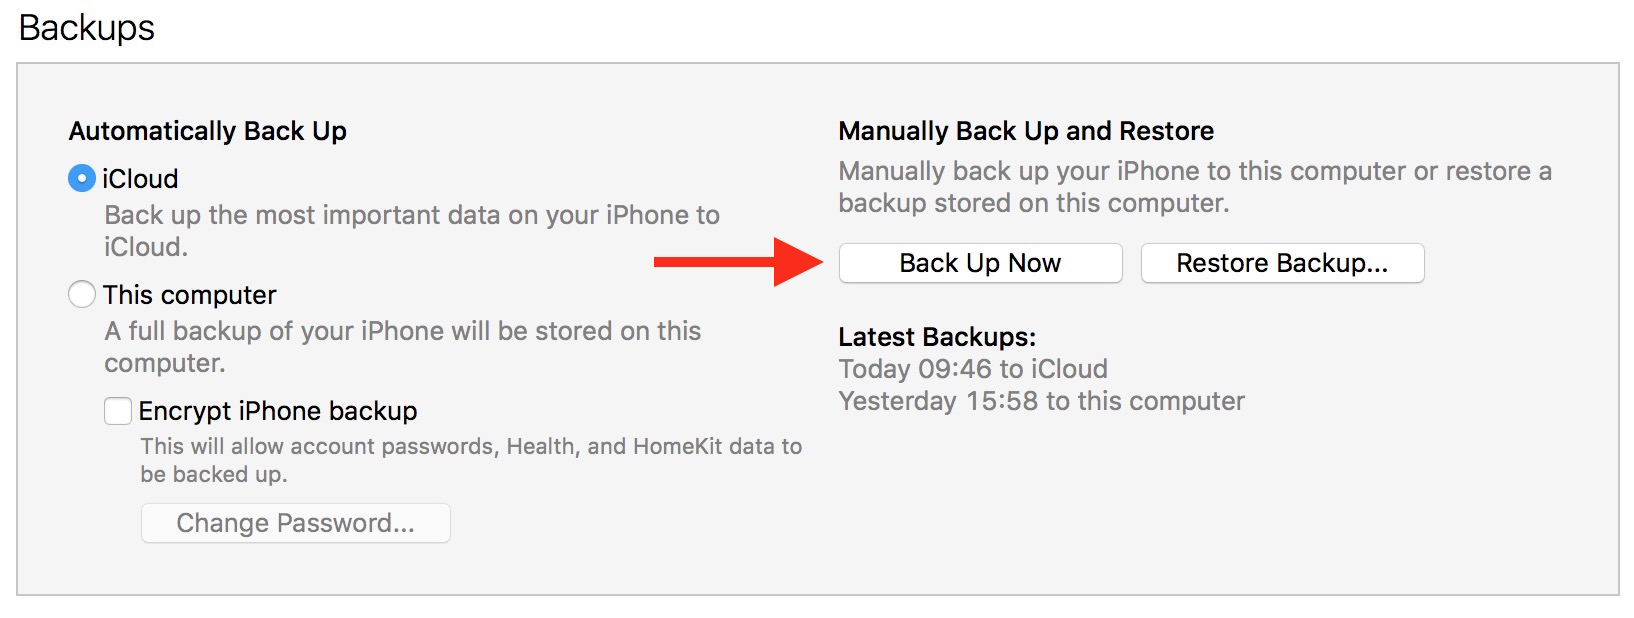 iphone backup could not be completed